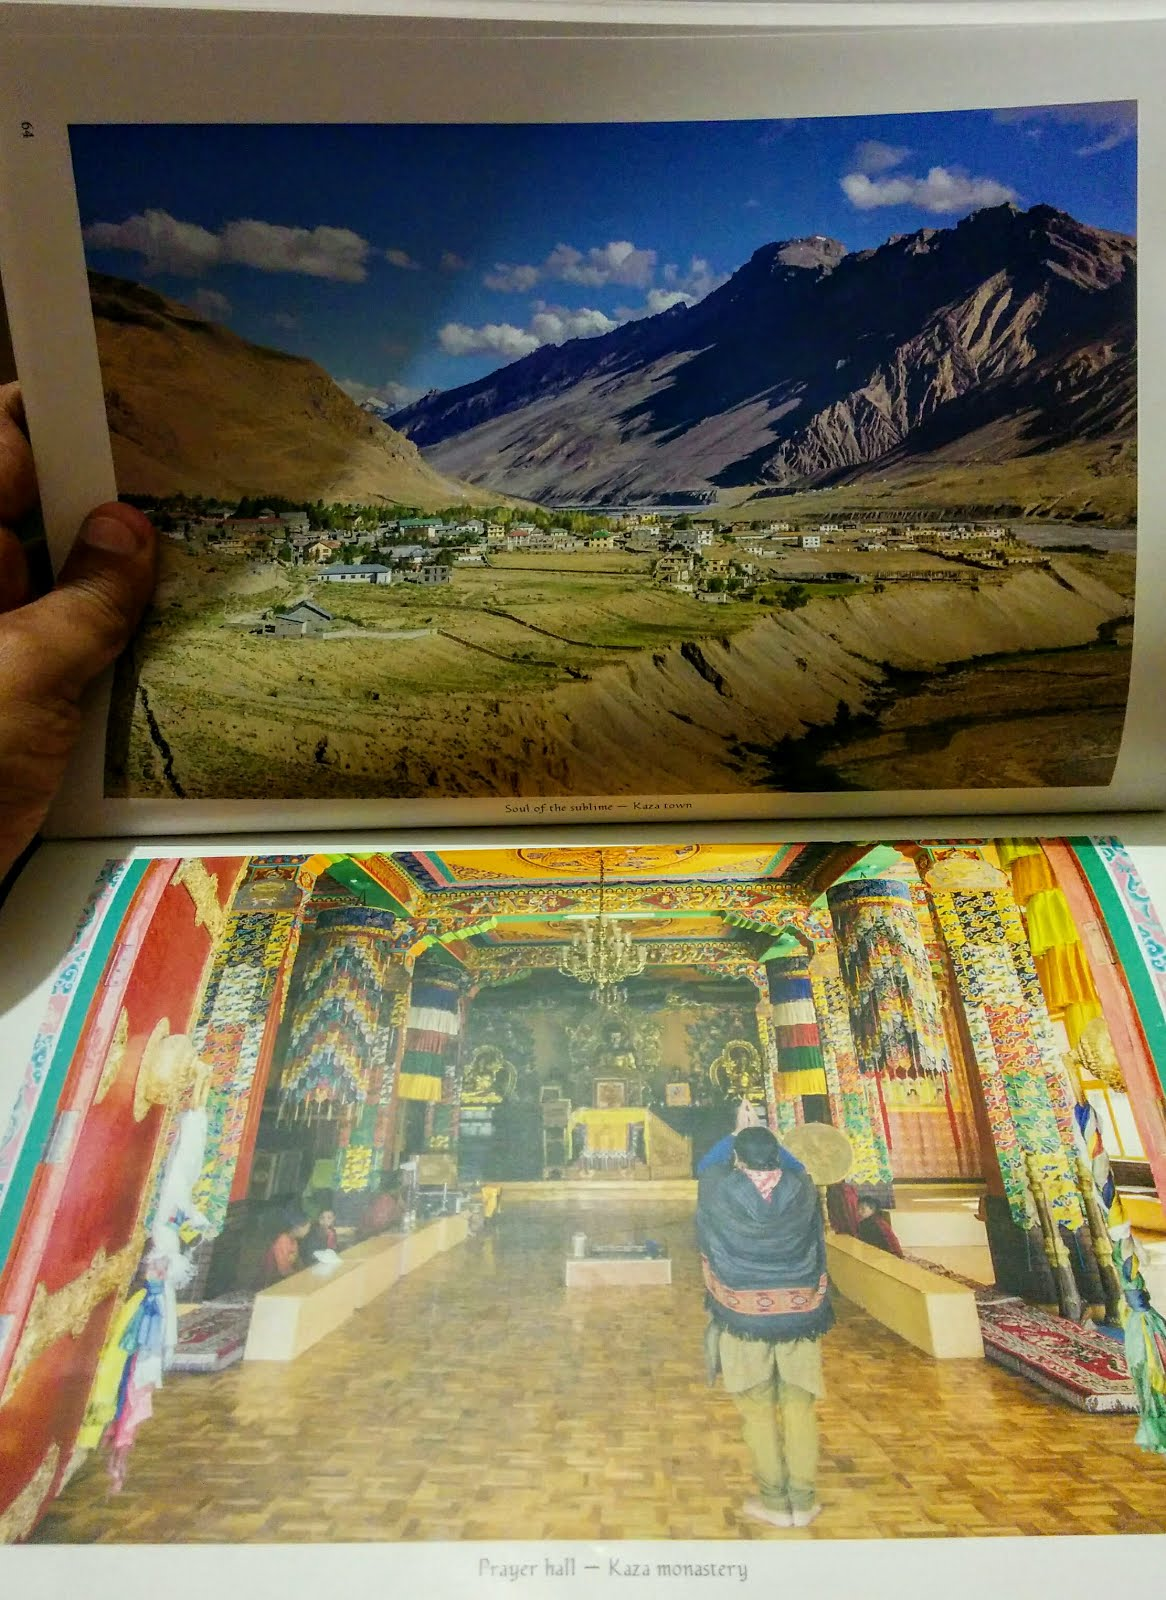 Interiors and Exteriors of Life in Spiti